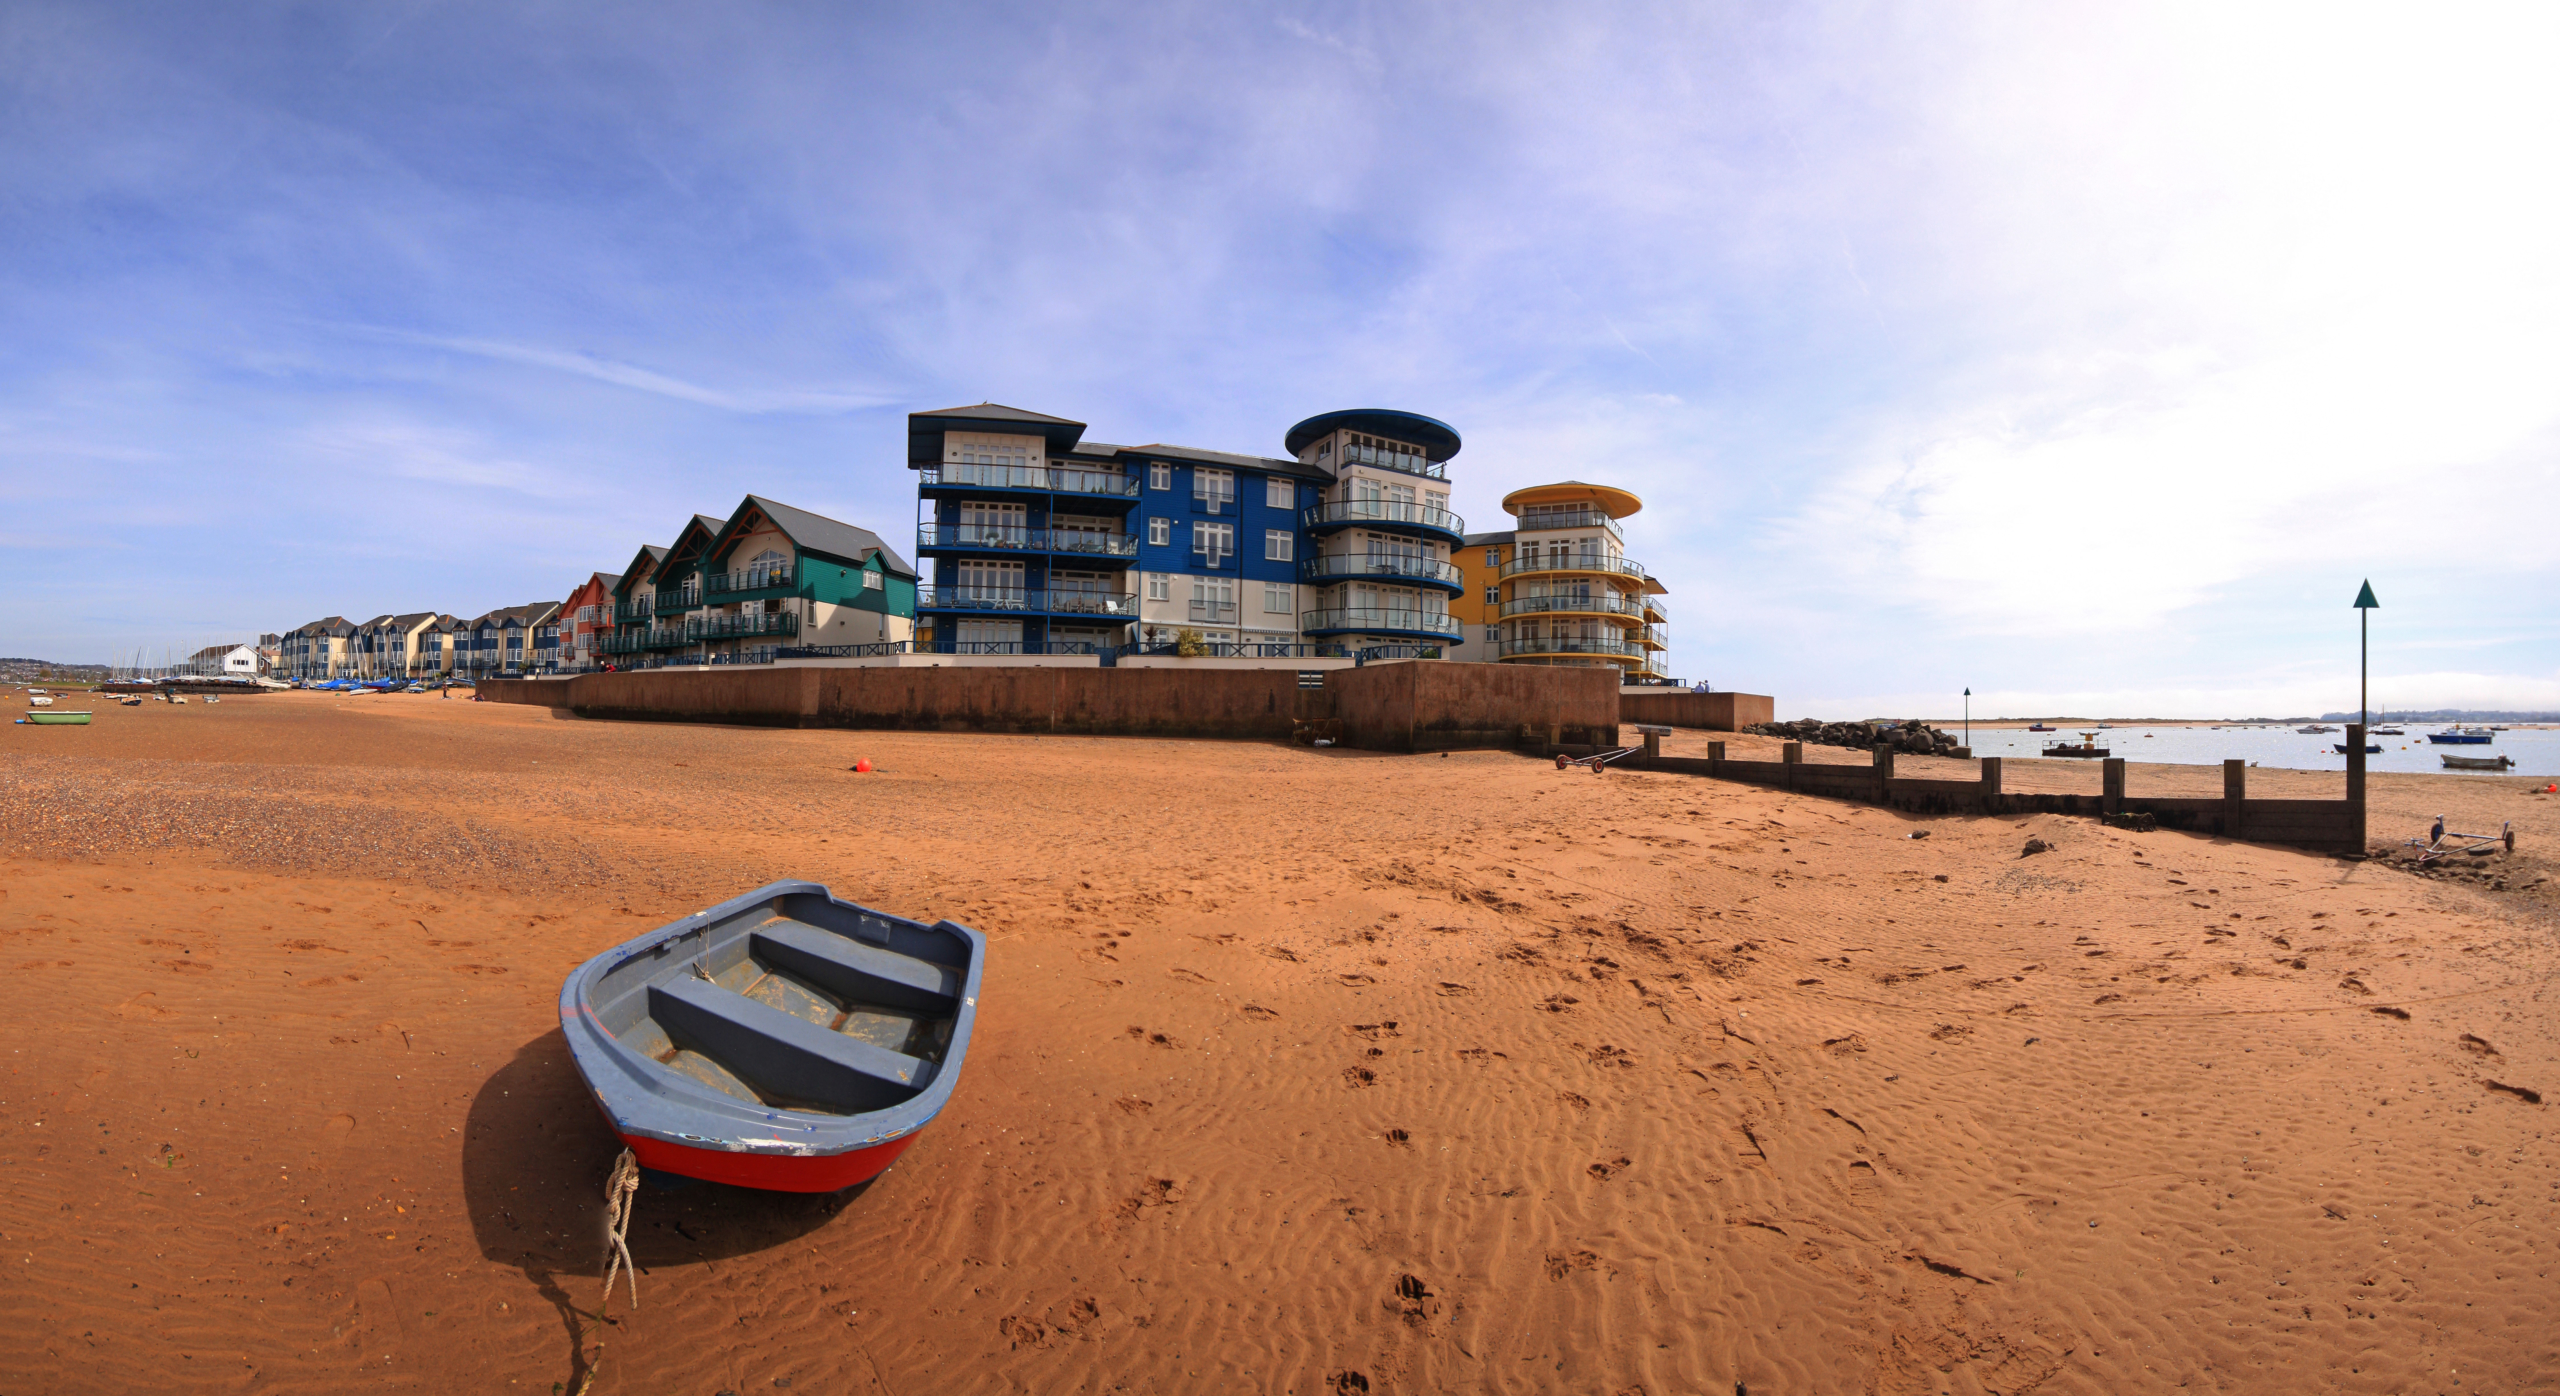 New development at Exmouth in Devon UK